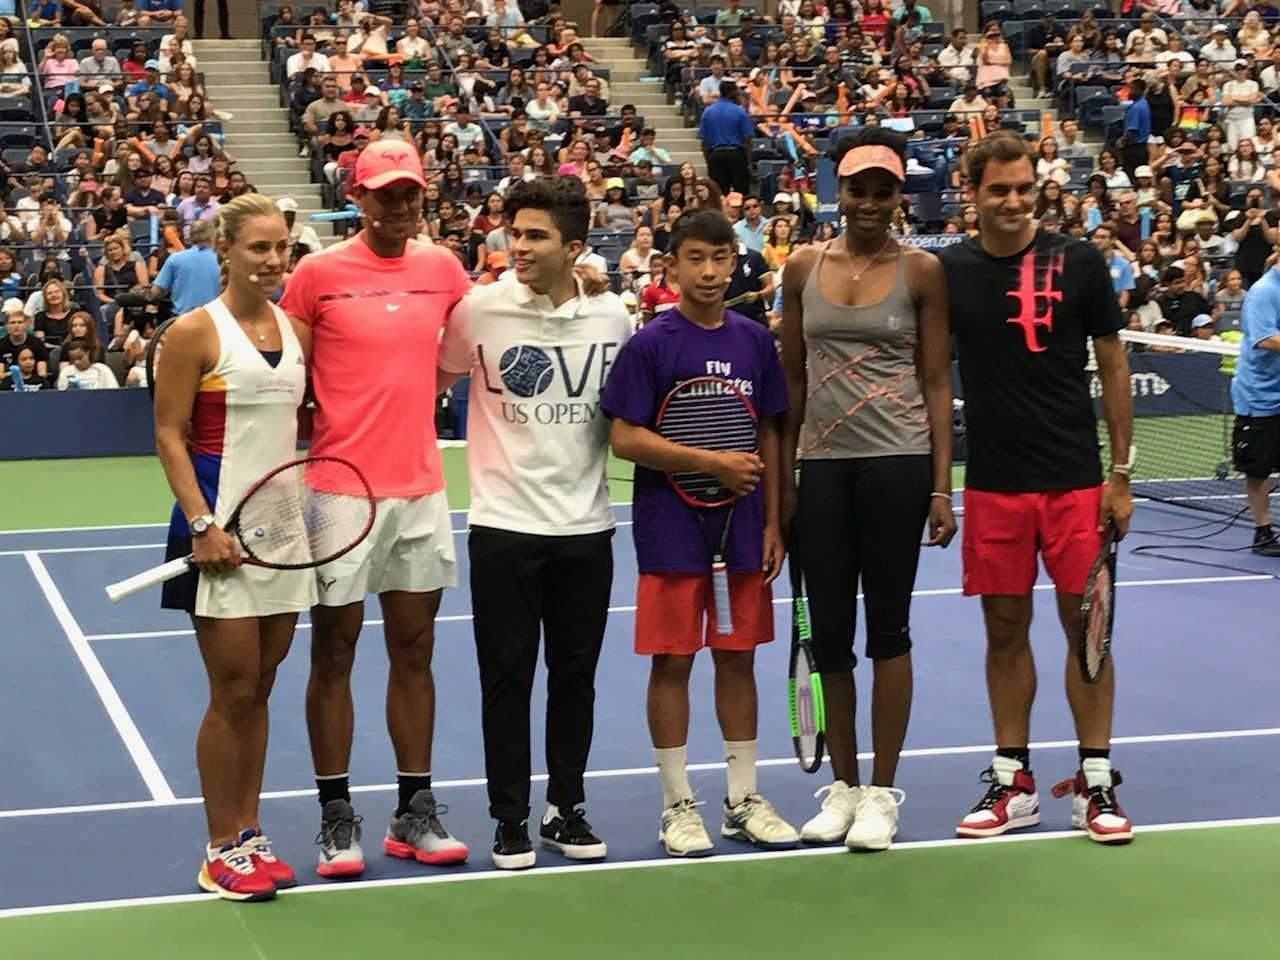 Nathan+poses+with+several+tennis+stars%2C+including+Rafael+Nadal%2C+Venus+Williams+and+Roger+Federer.+Nathan+was+inspired+by+many+of+these+professional+players.+Photo+courtesy+of+Nathan+Nguyen